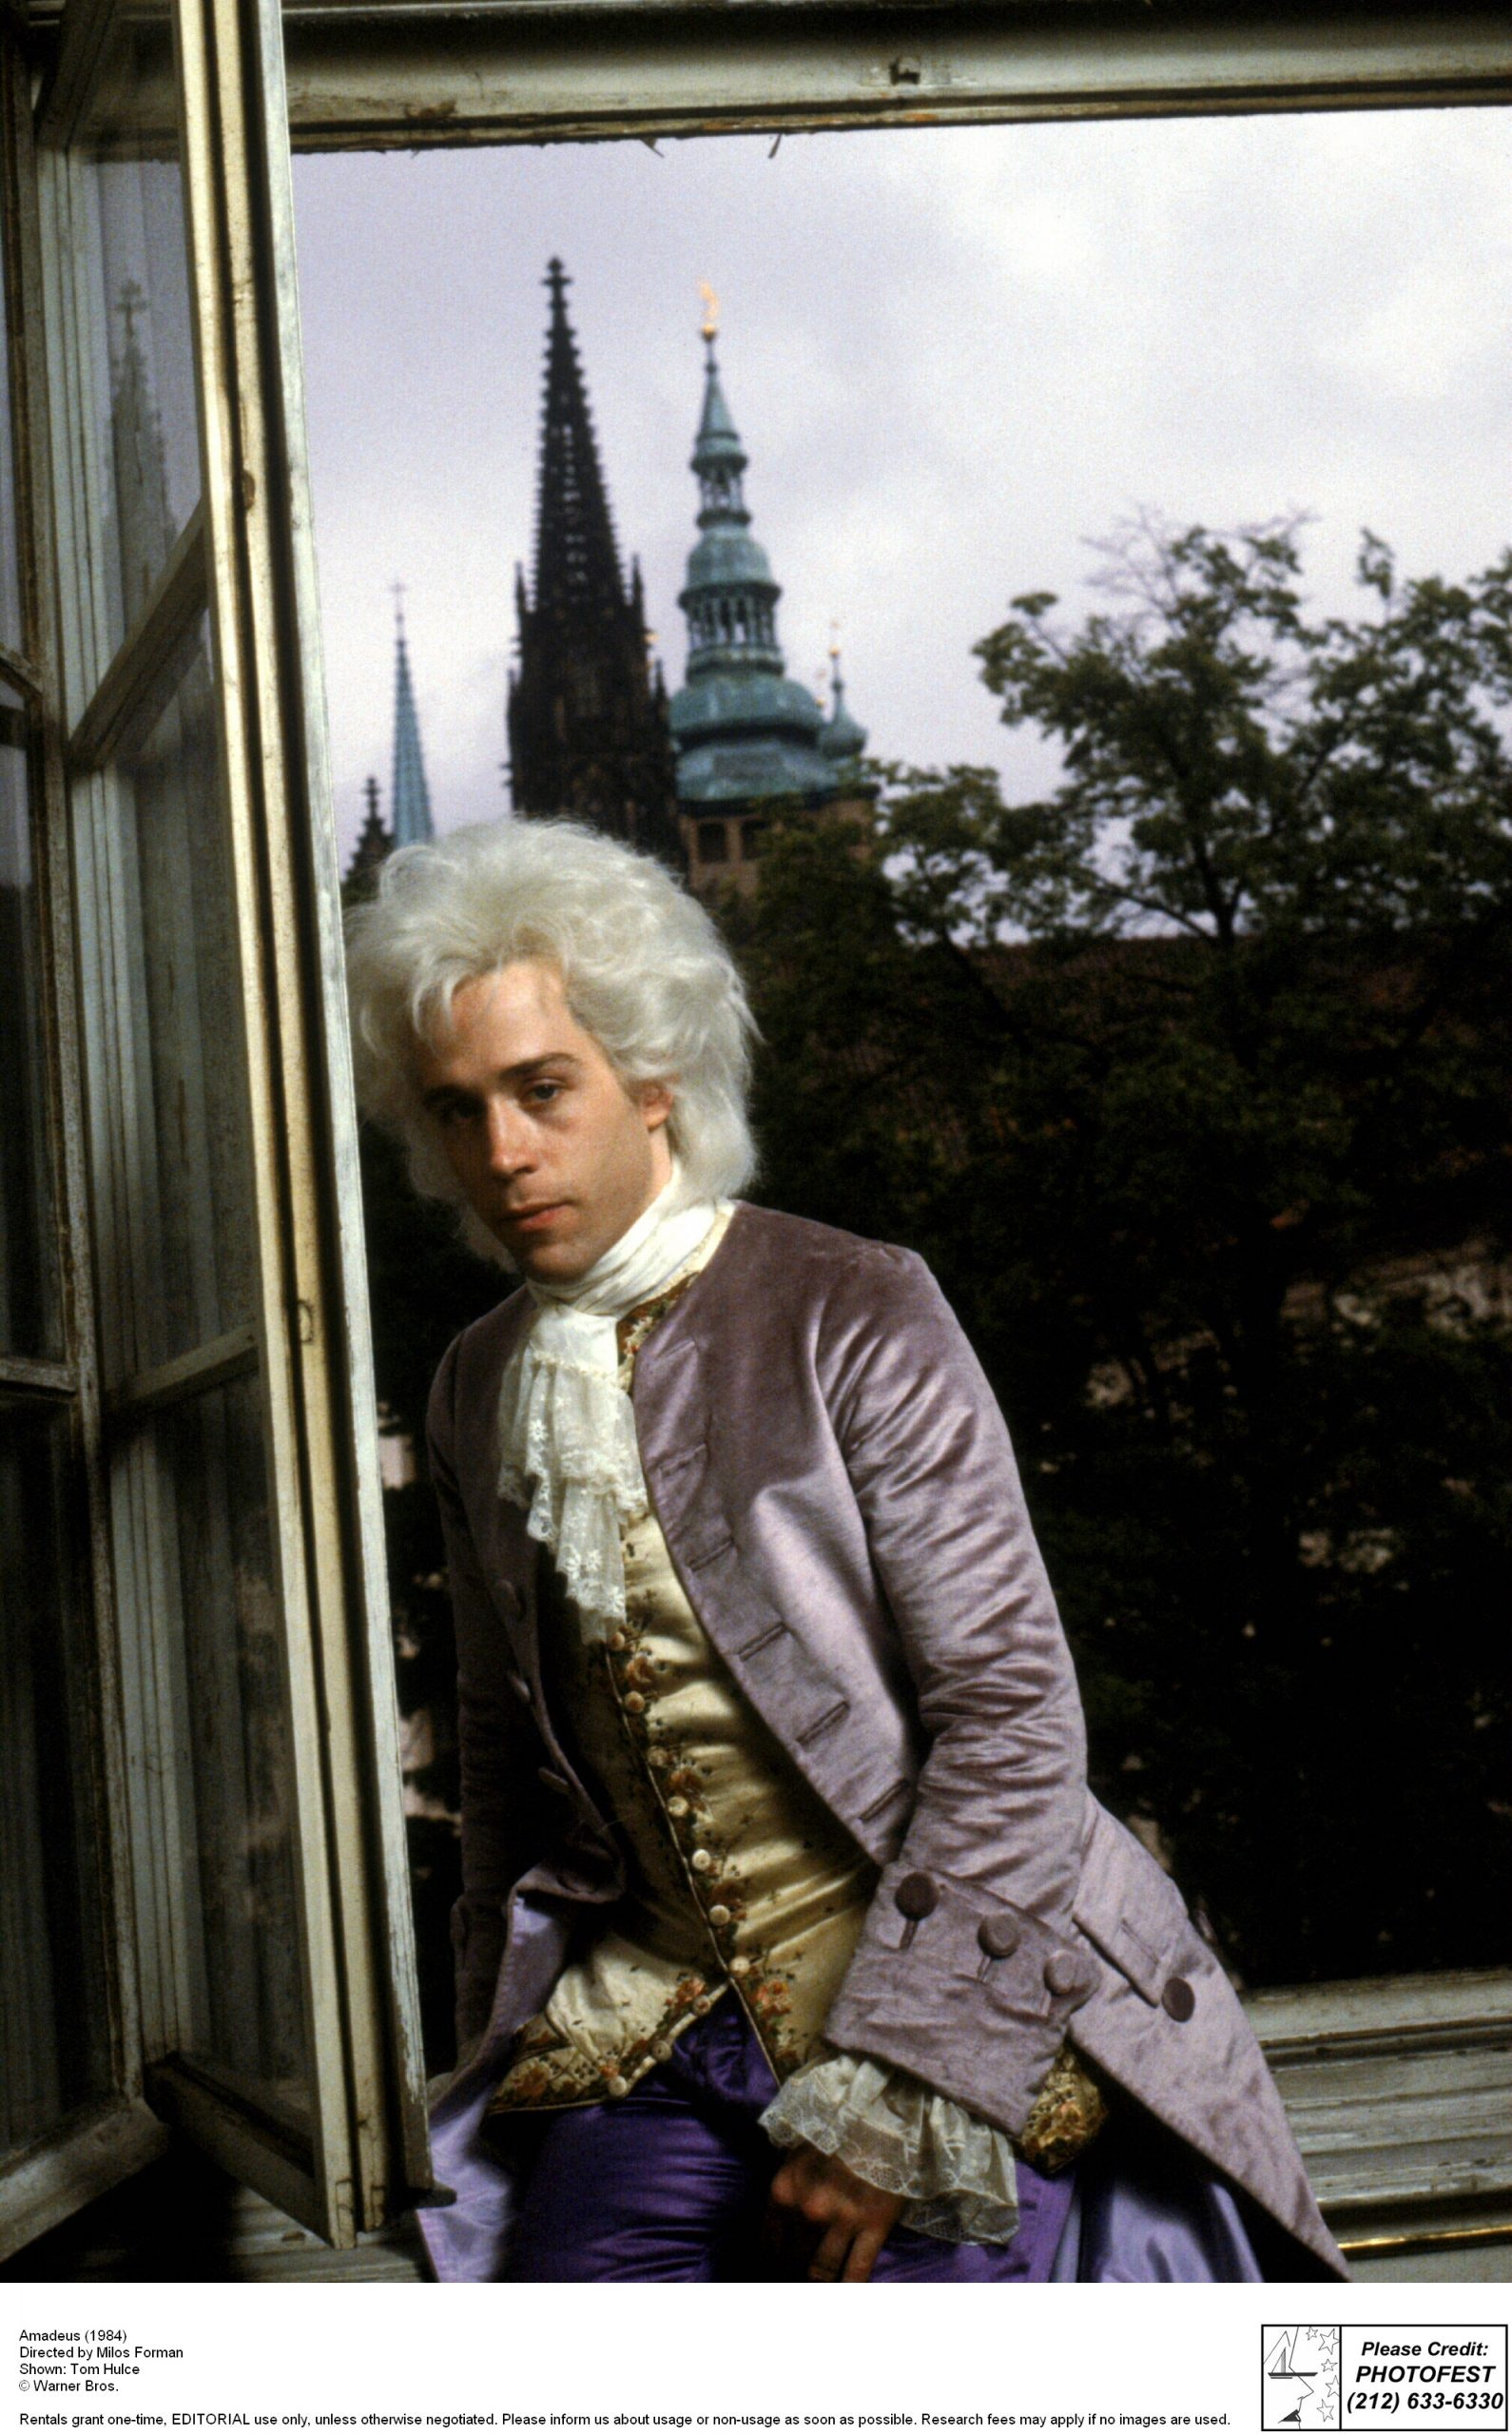 Man dressed as Mozart sitting on window sill with castle in background